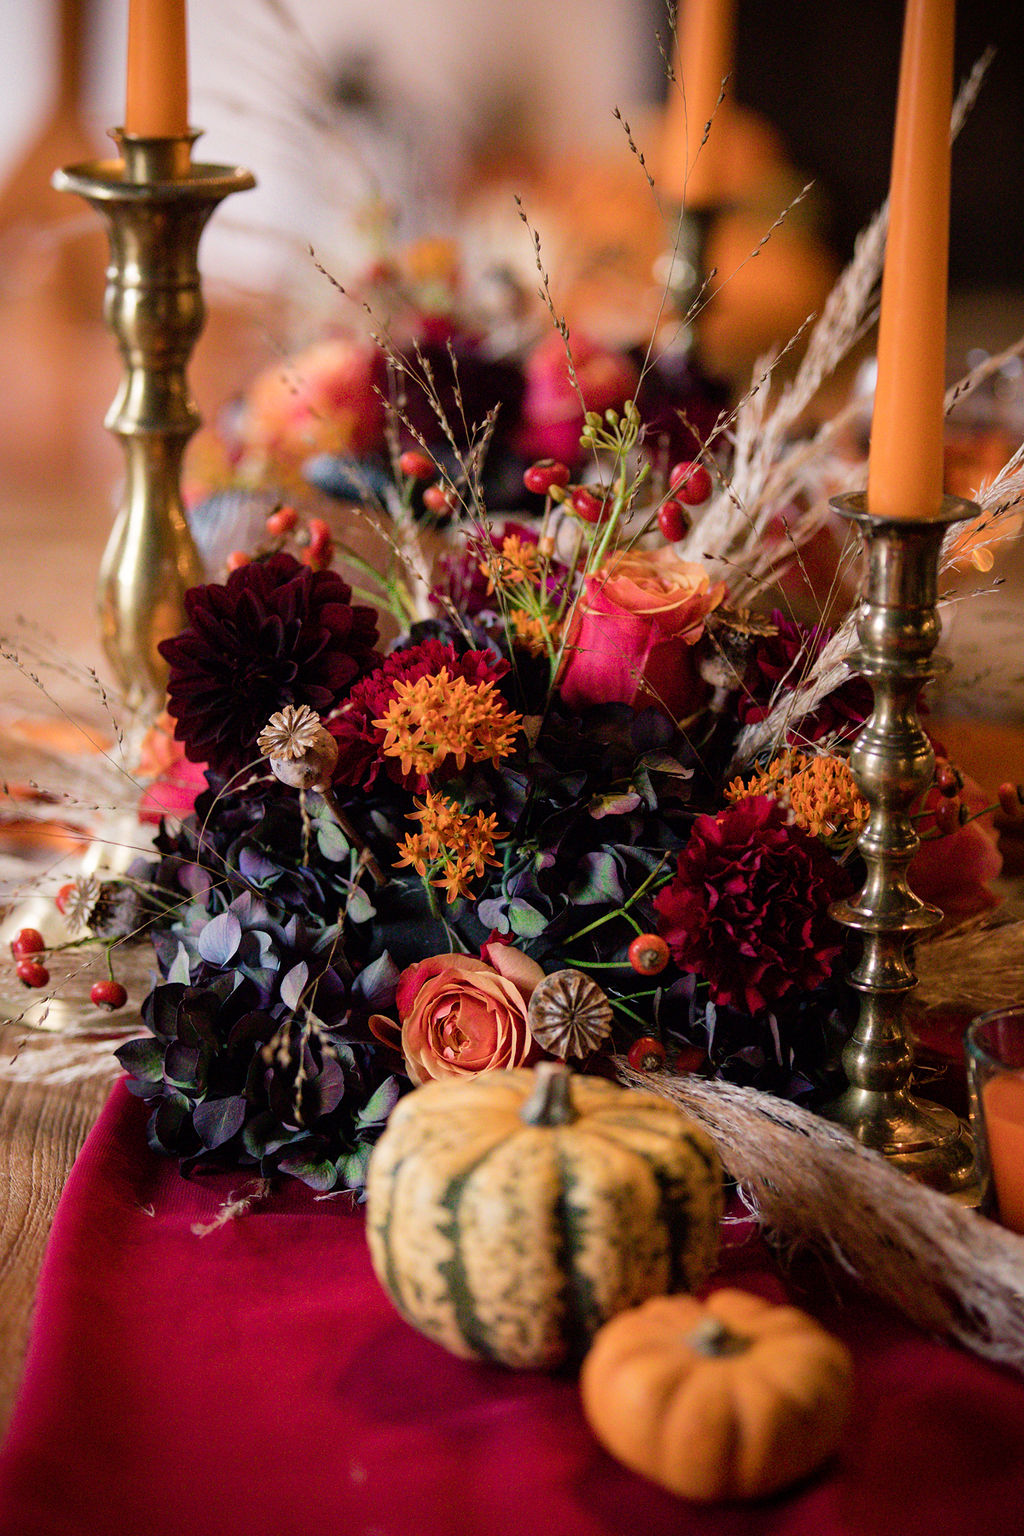 dark autumn wedding - wedding pumpkins - autumn wedding flowers - autumn wedding styling